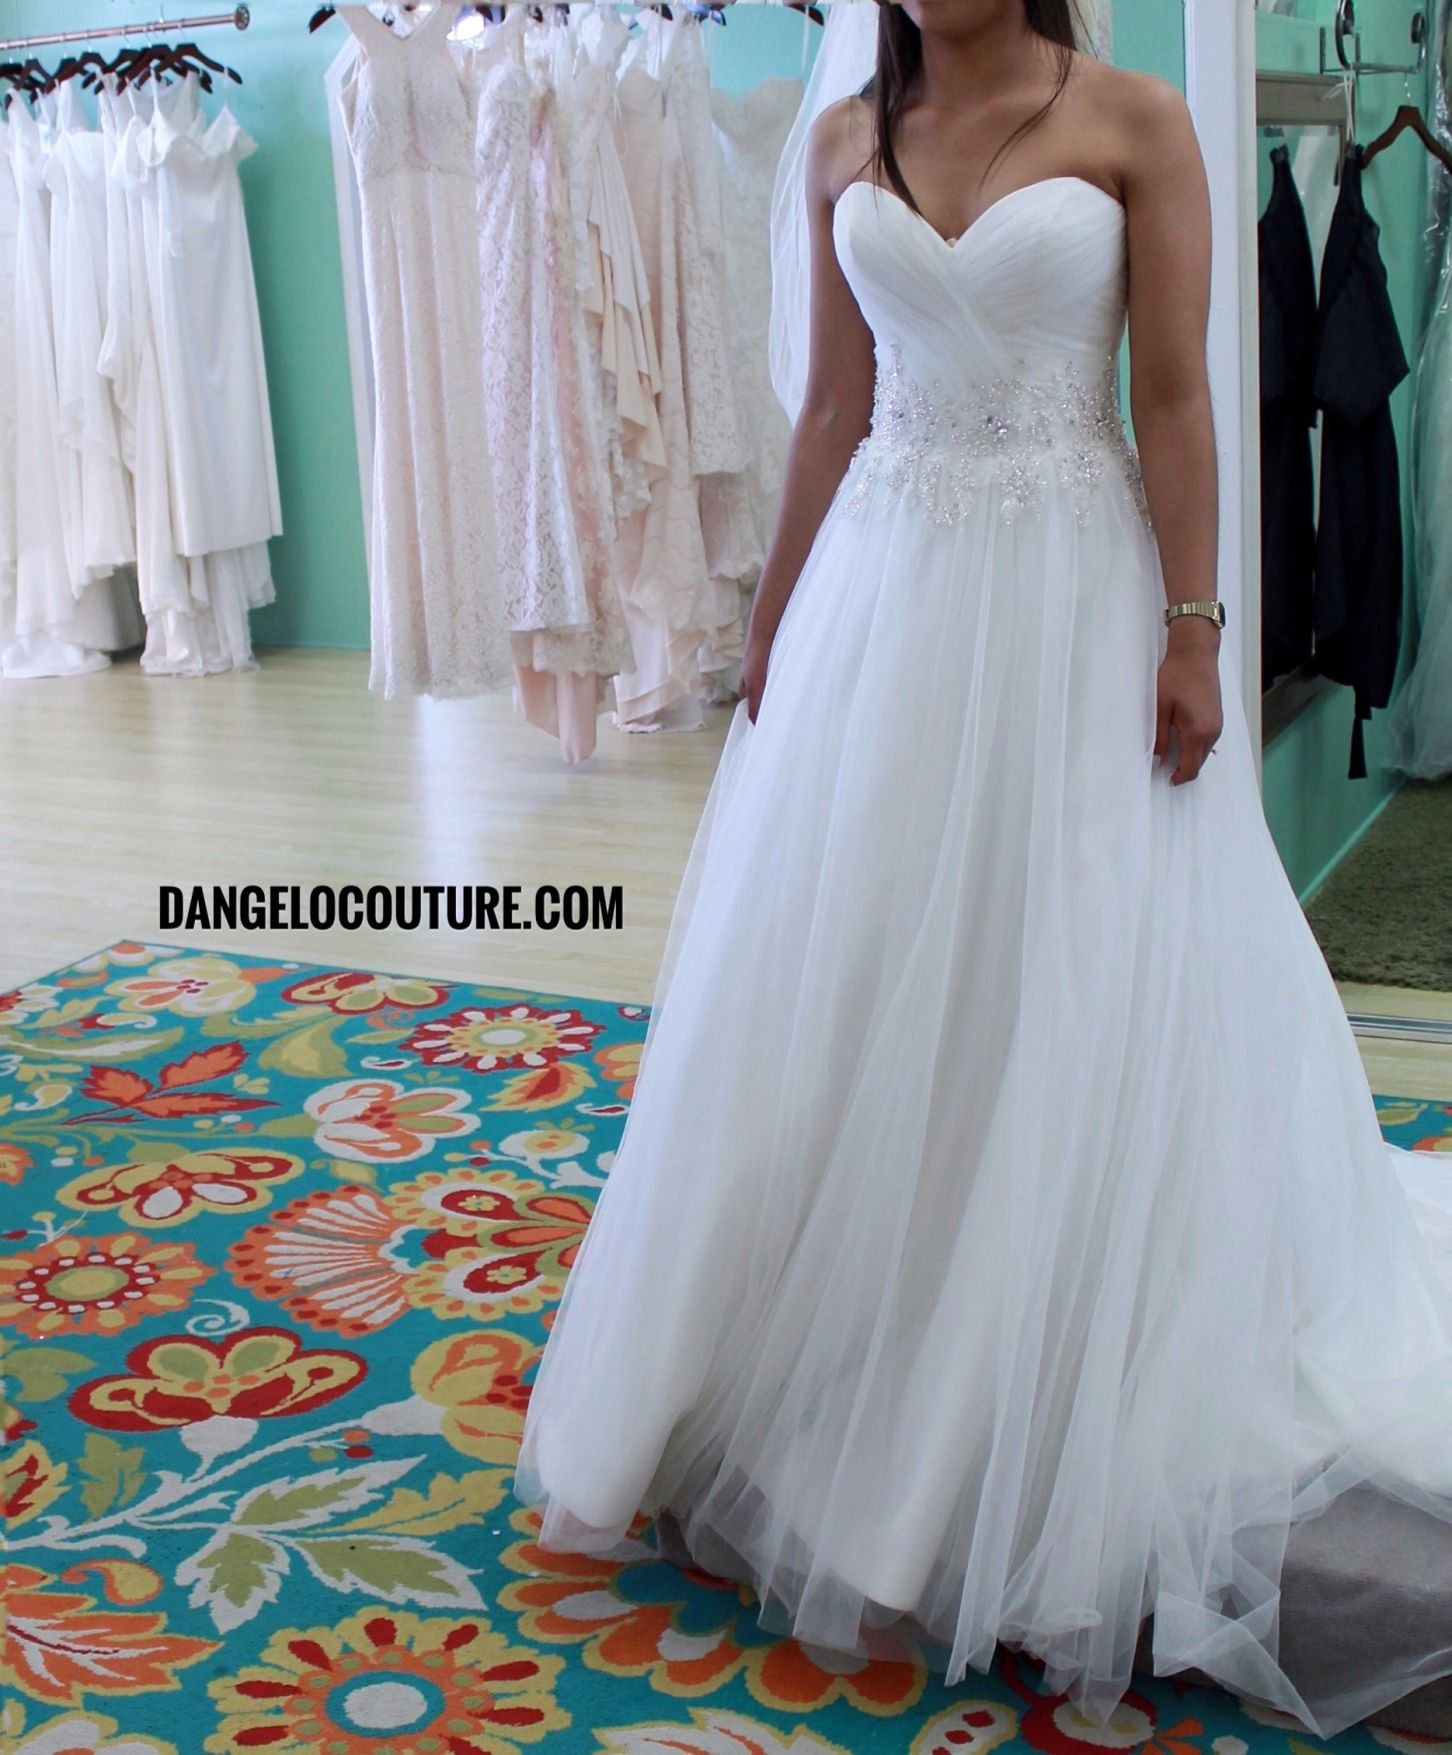 Fine Wedding Dress Rental Dallas Images - All Wedding Dresses ...